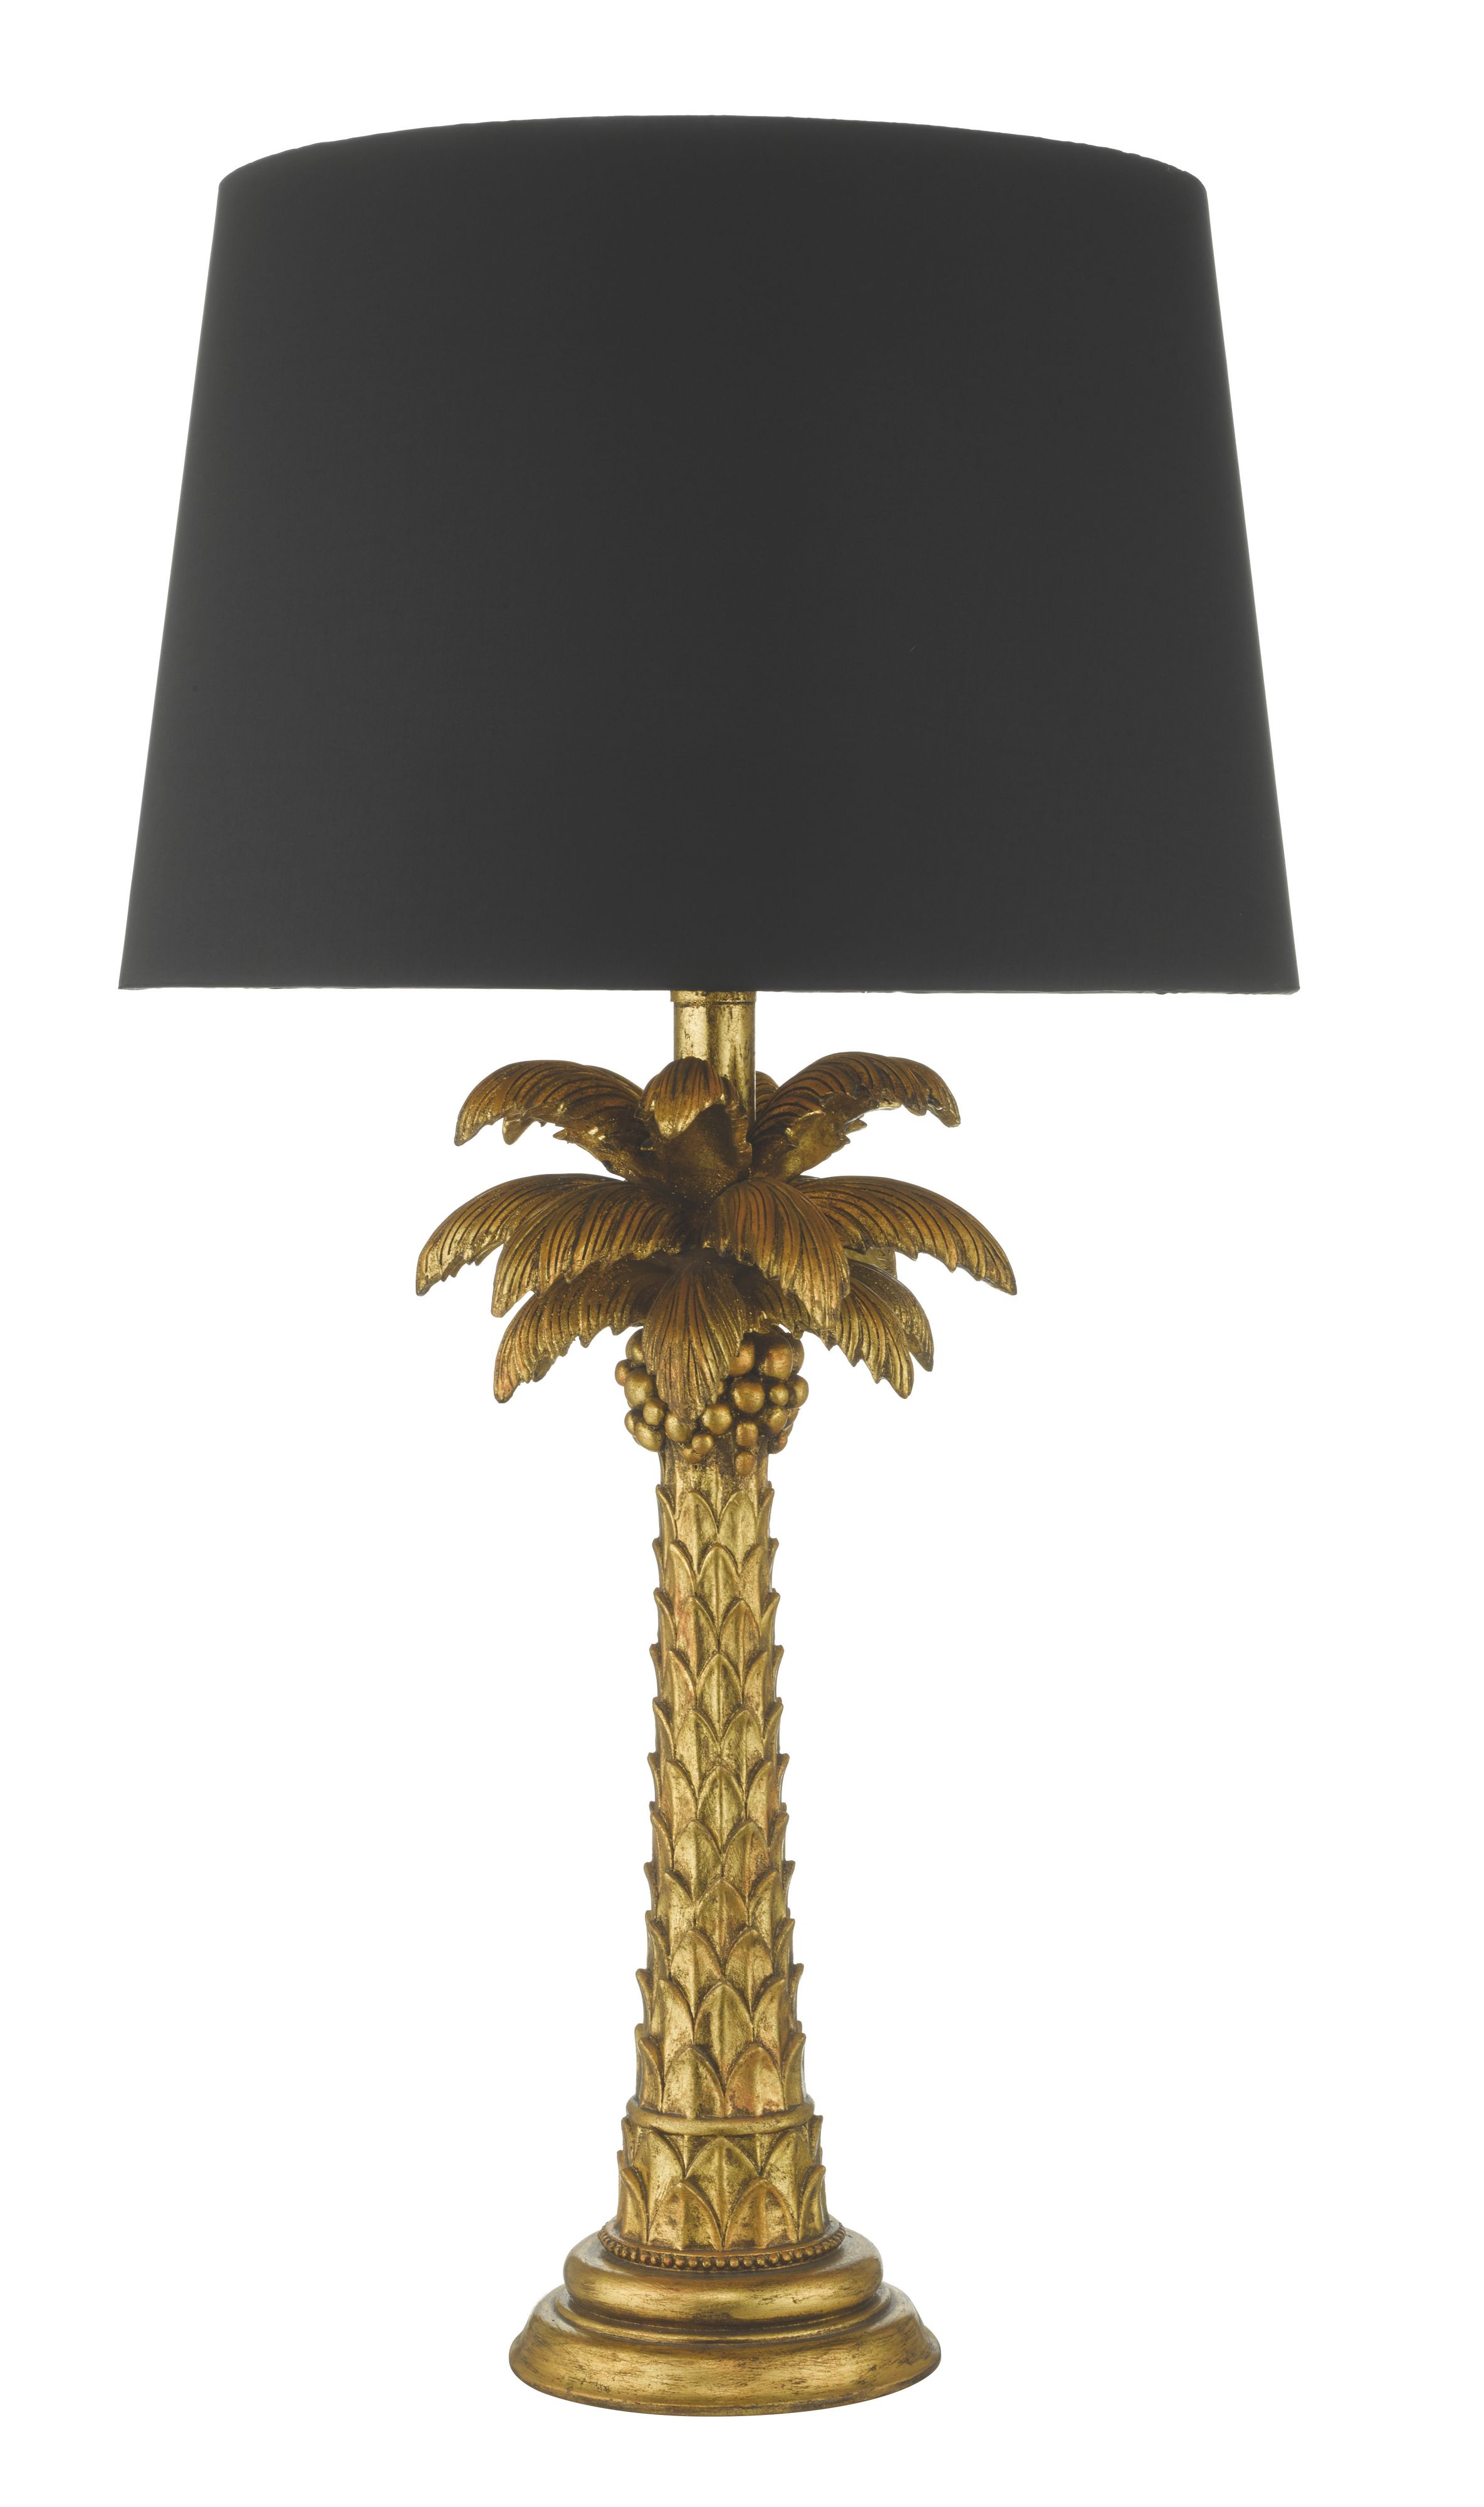 Biba Biba Paradise palm tree table lamp